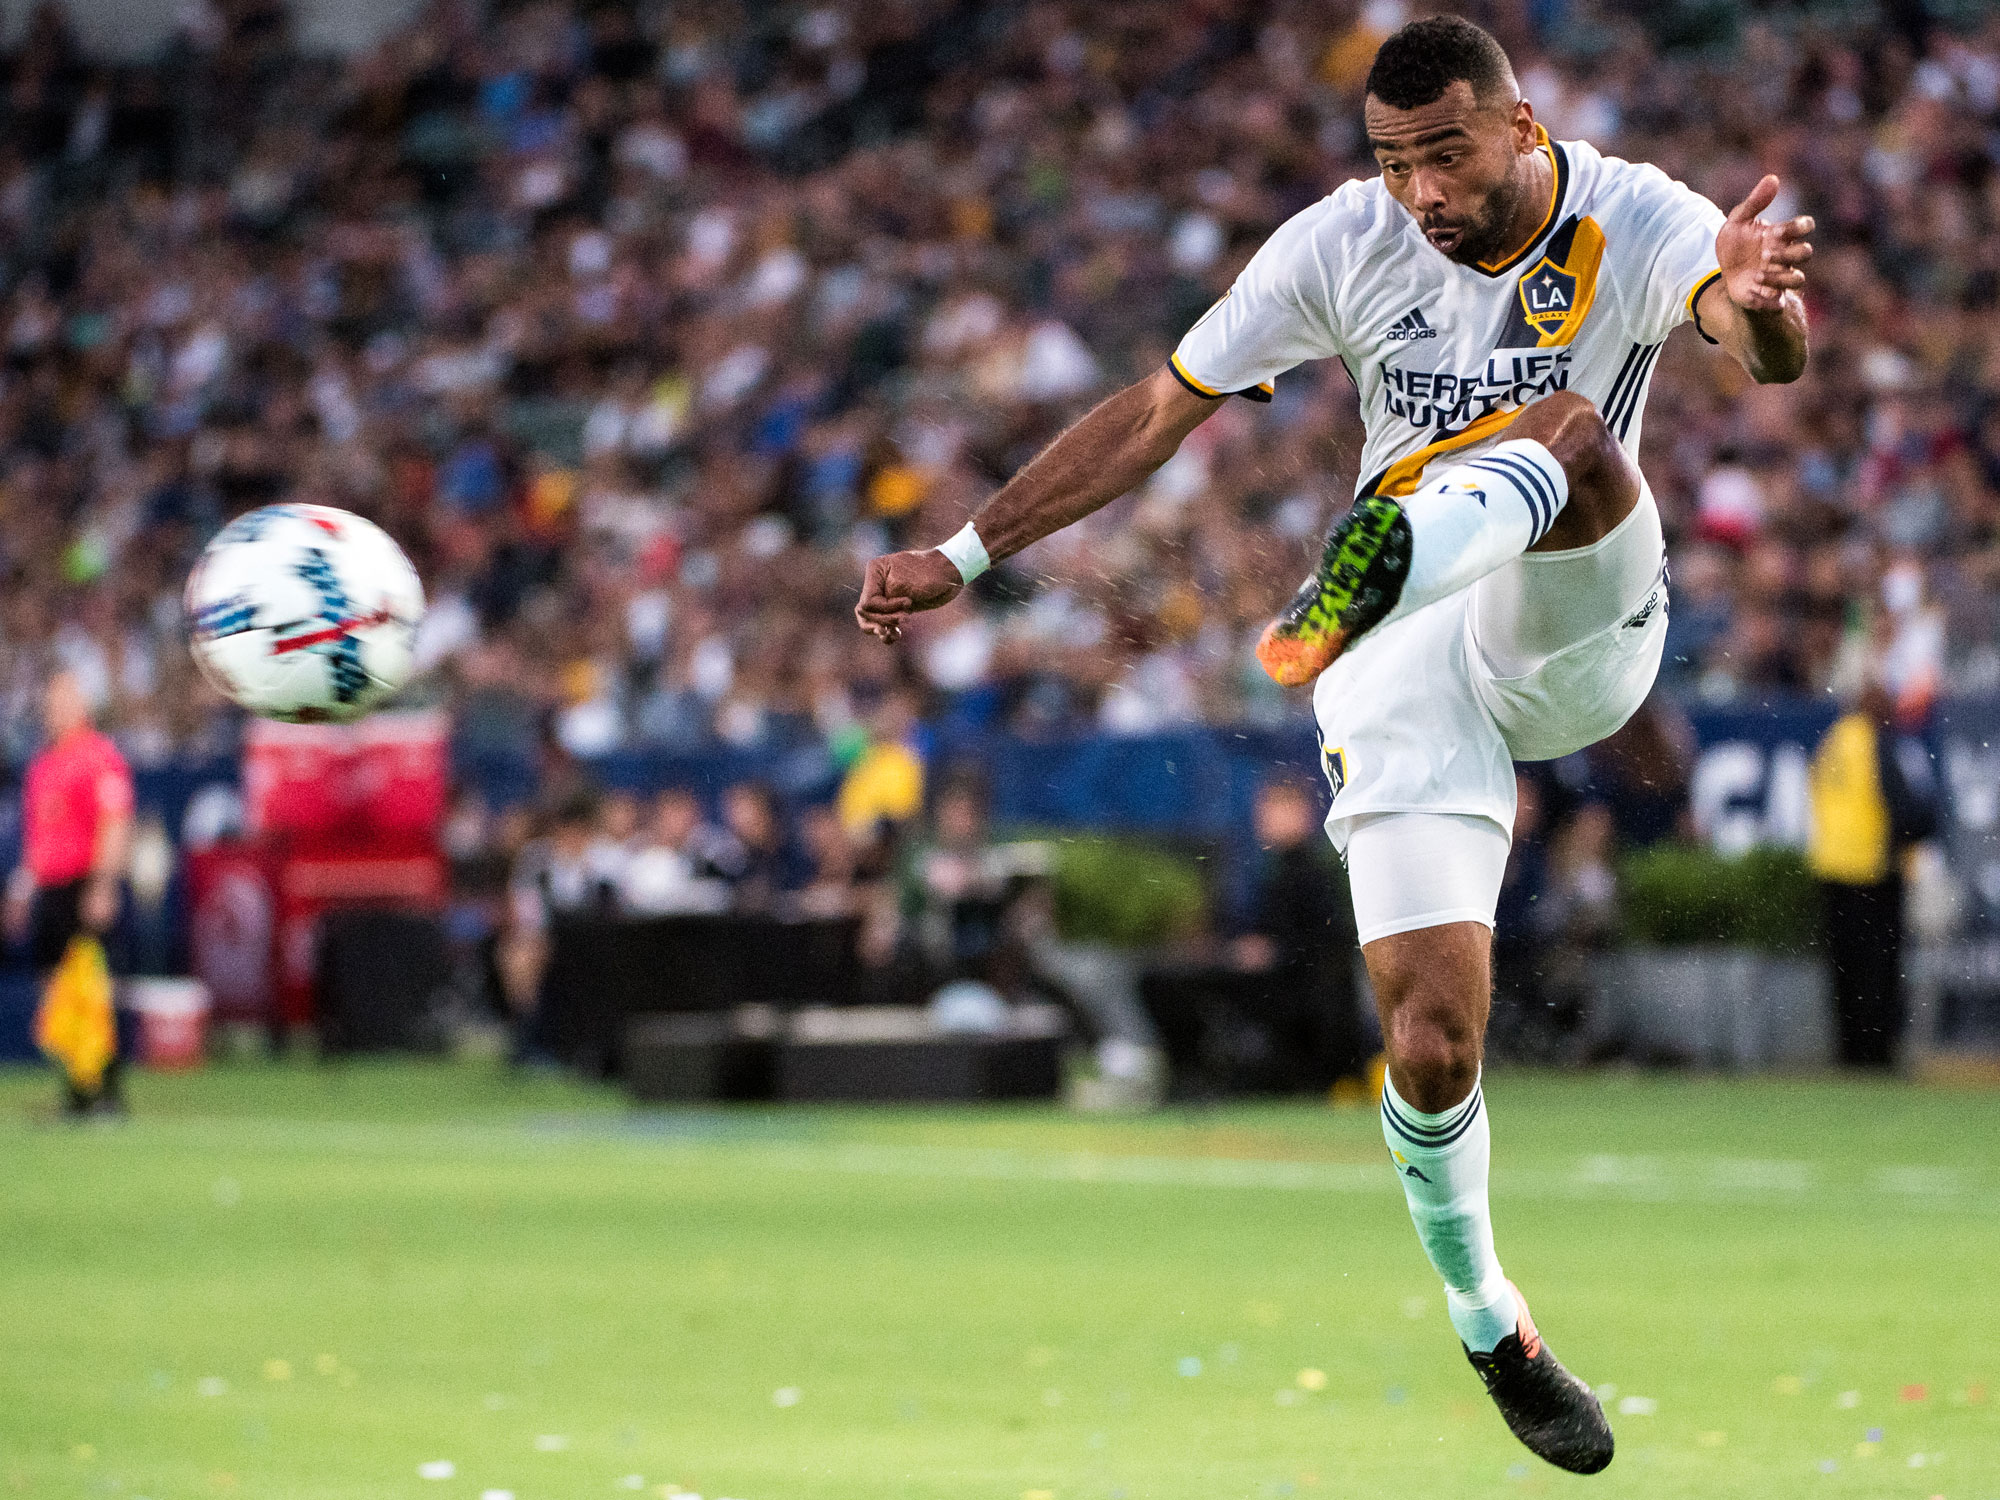 Ashley Cole has found a new home with the LA Galaxy